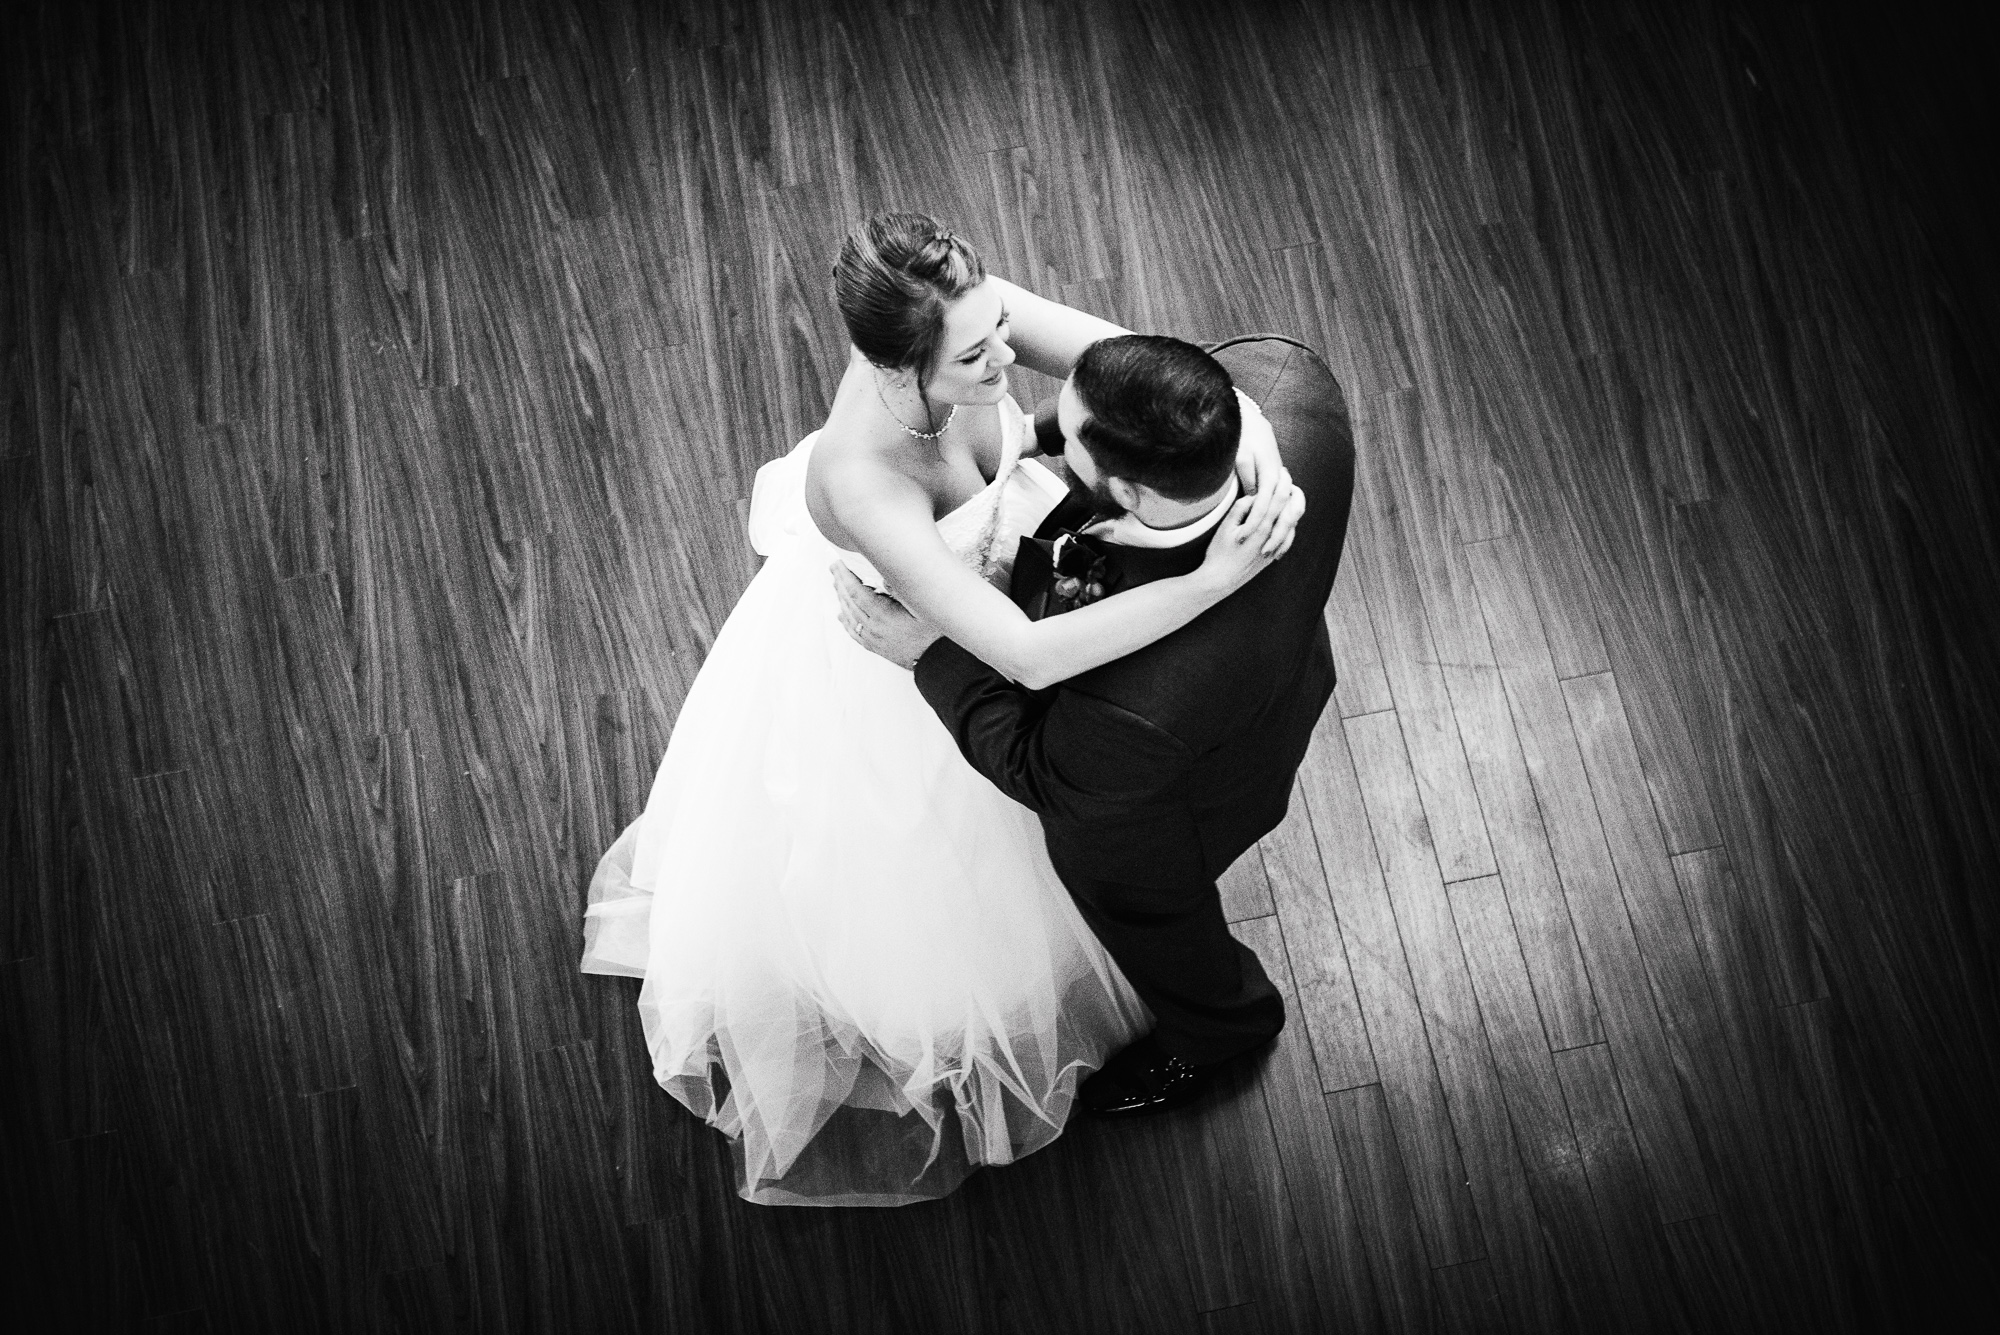 Stephen & Amanda's Wedding (98 of 228).jpg